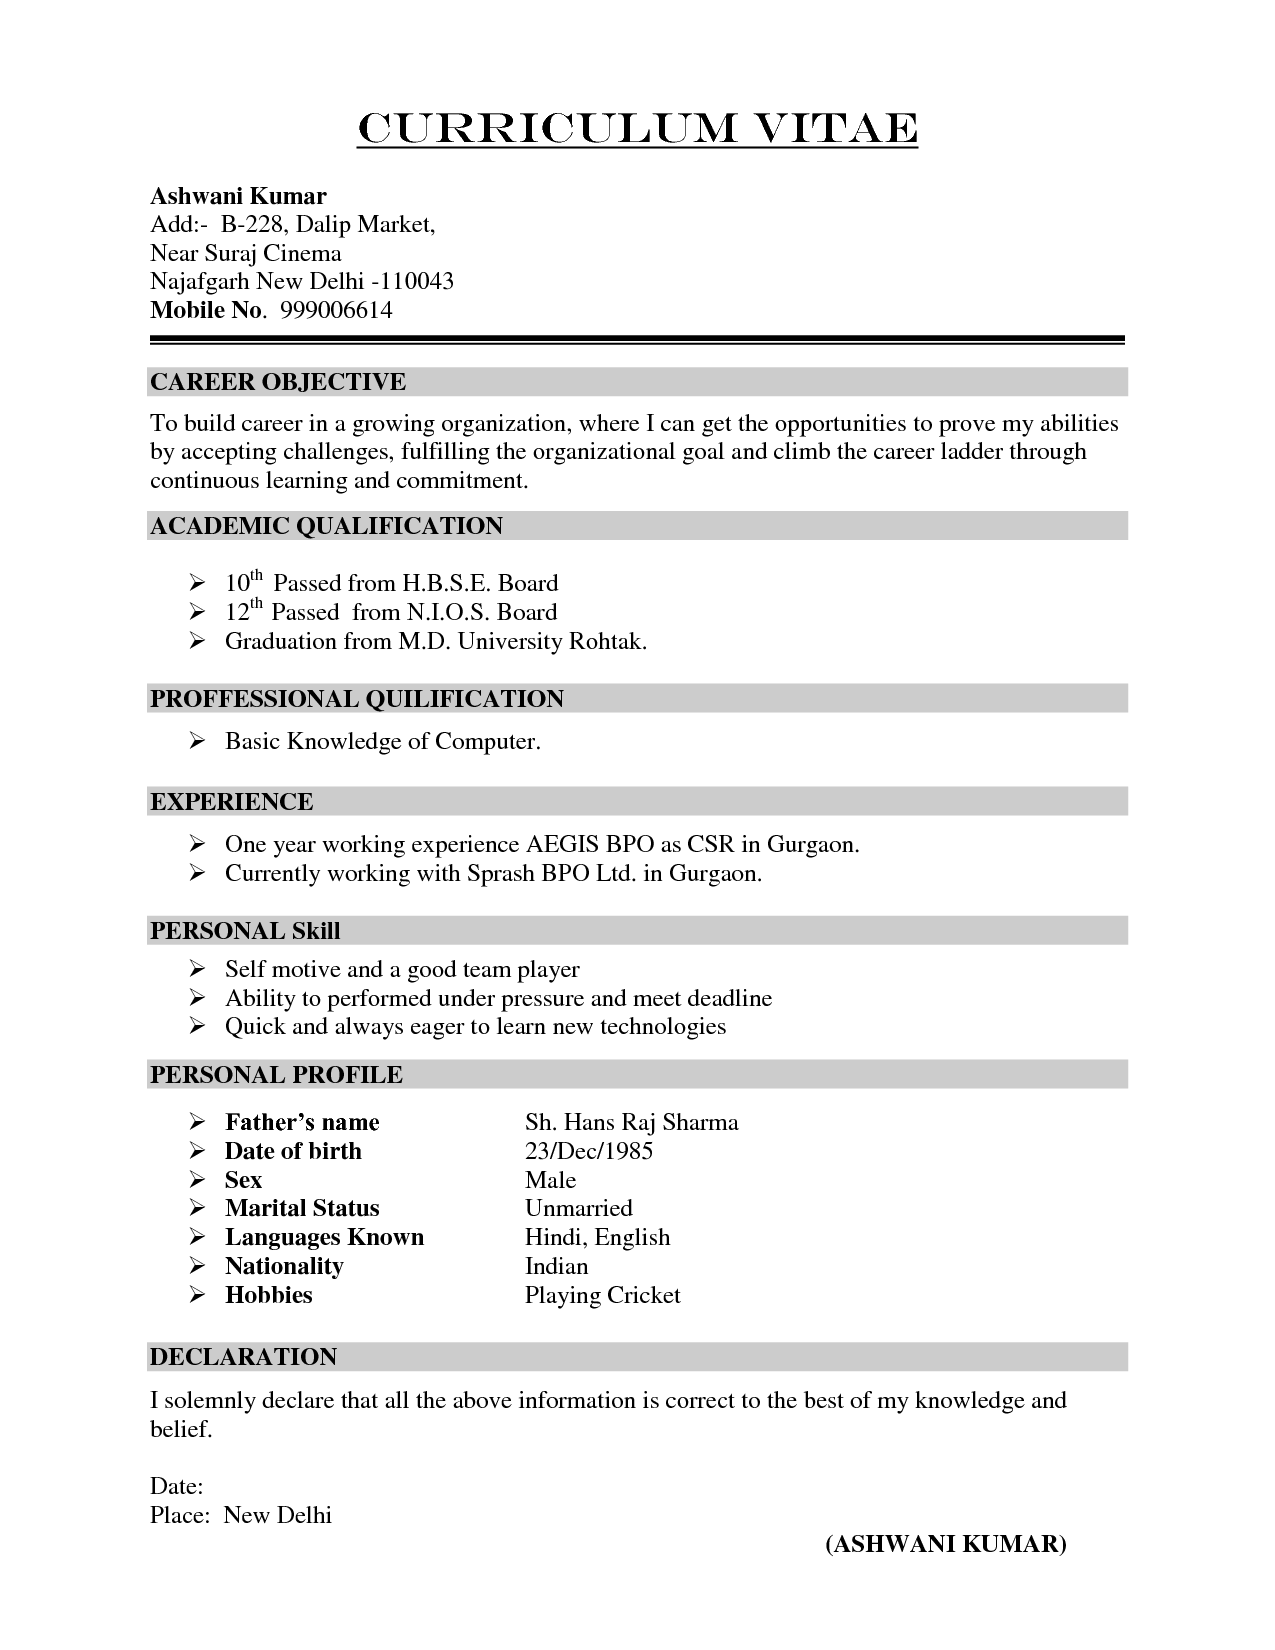 Resume Difference Of Resume And Curriculum Vitae difference cv resume the between a and pdf curriculum vitae samples template 2016 resume